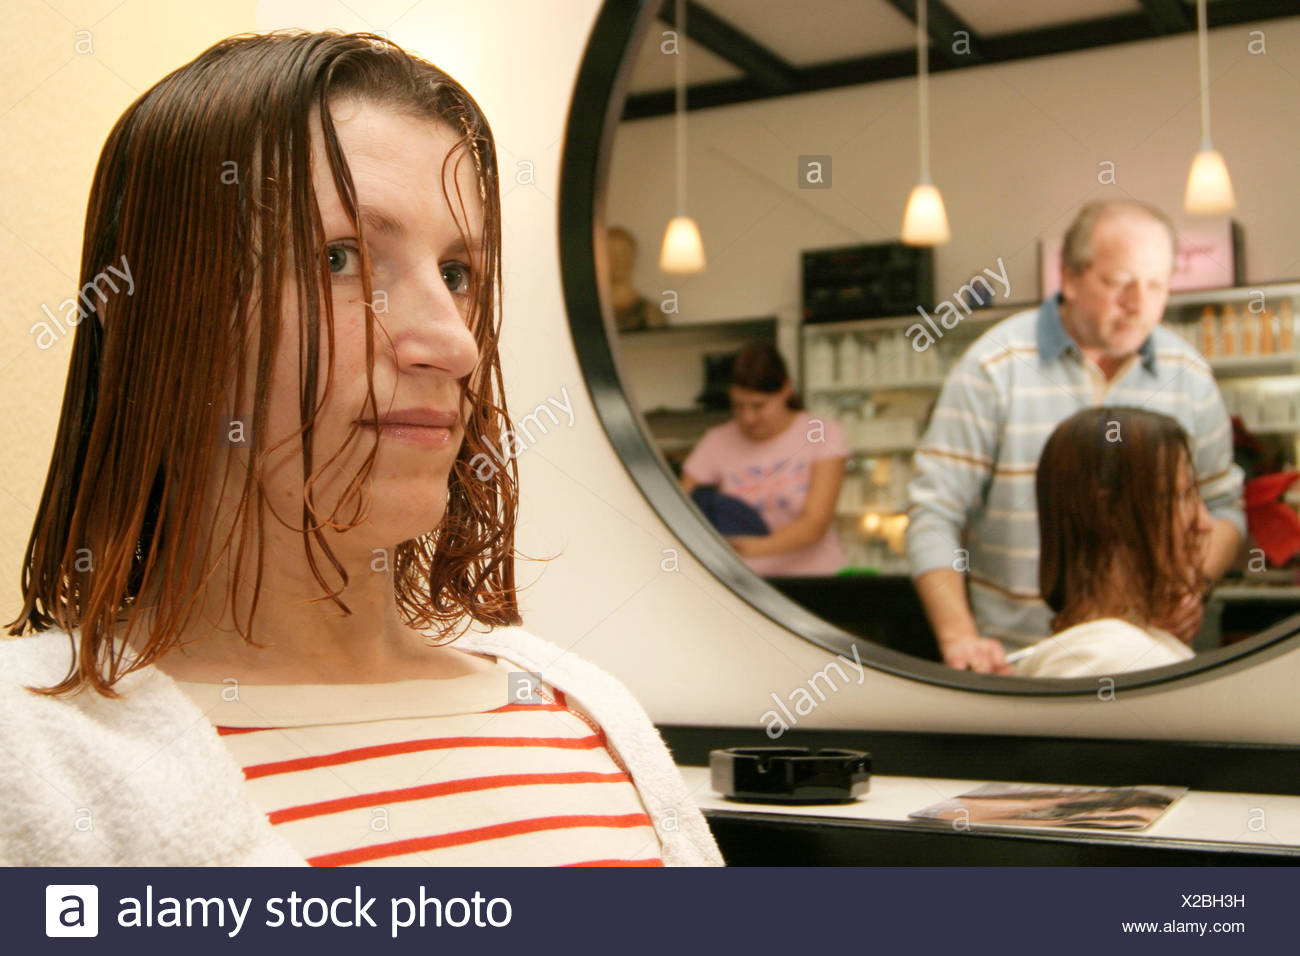 woman with wet hairs at the hairdresser - Stock Image